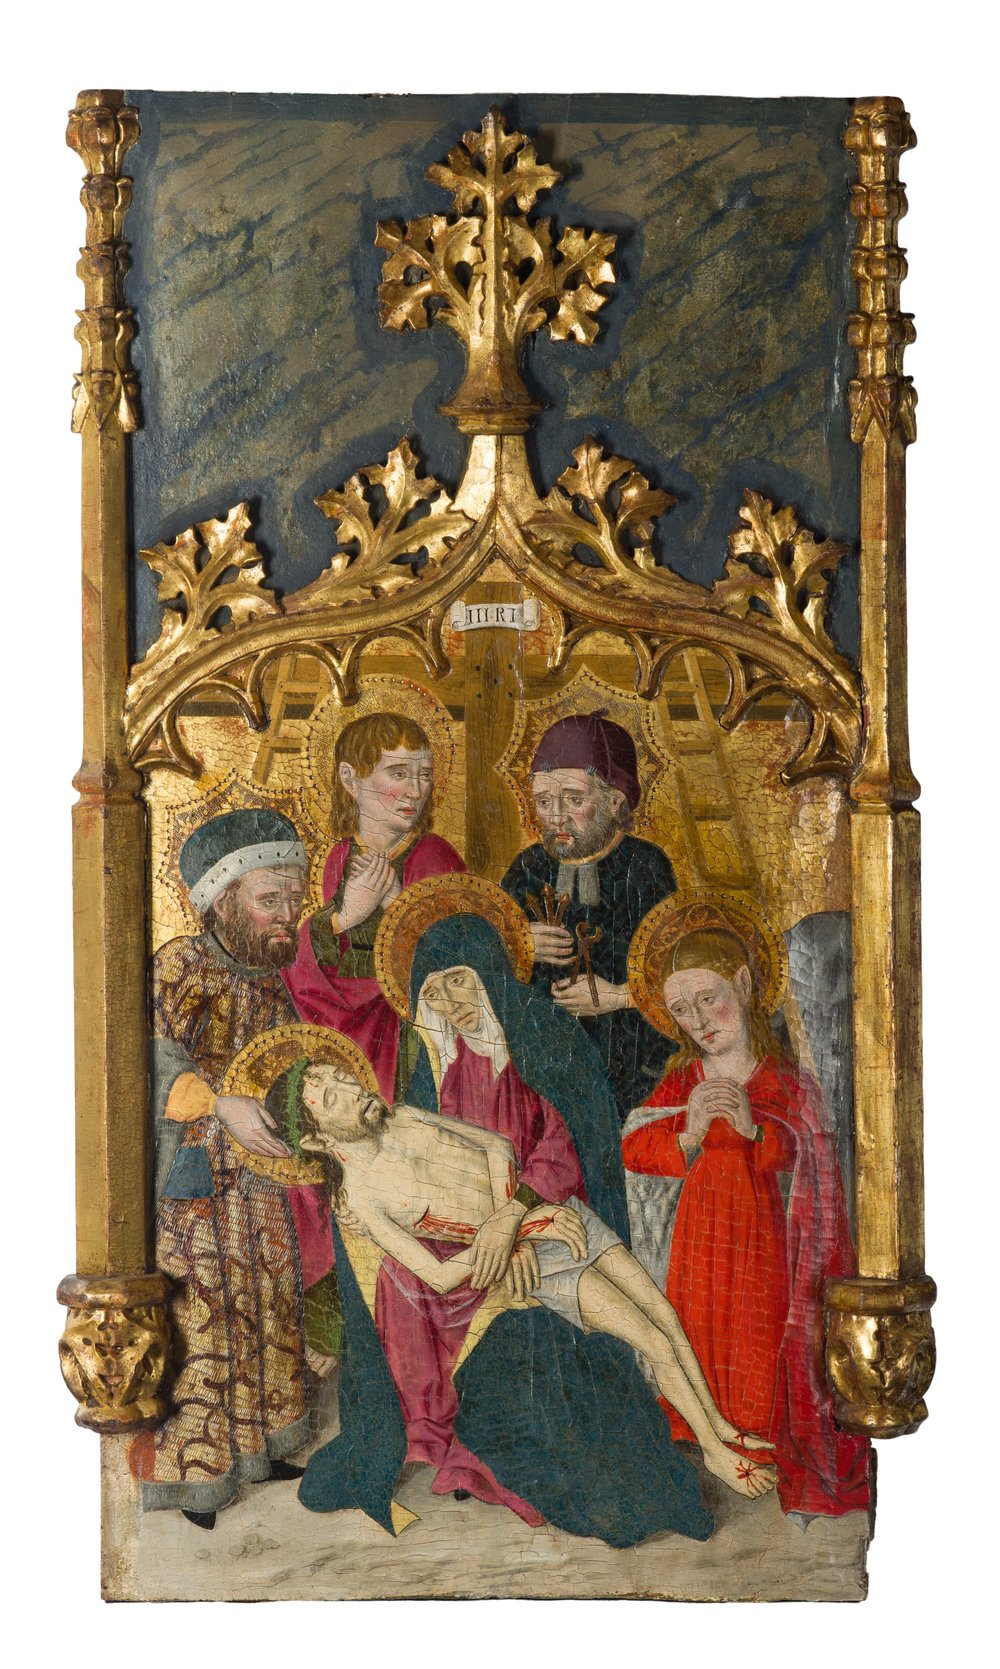 261_Joan Figuera_The retable of The Virgin. Saint Peter Martyr. and Saint Mark_Egg tempera on panel_261 x 249 cm. 102 ¾ x 98 in._small-2.jpg